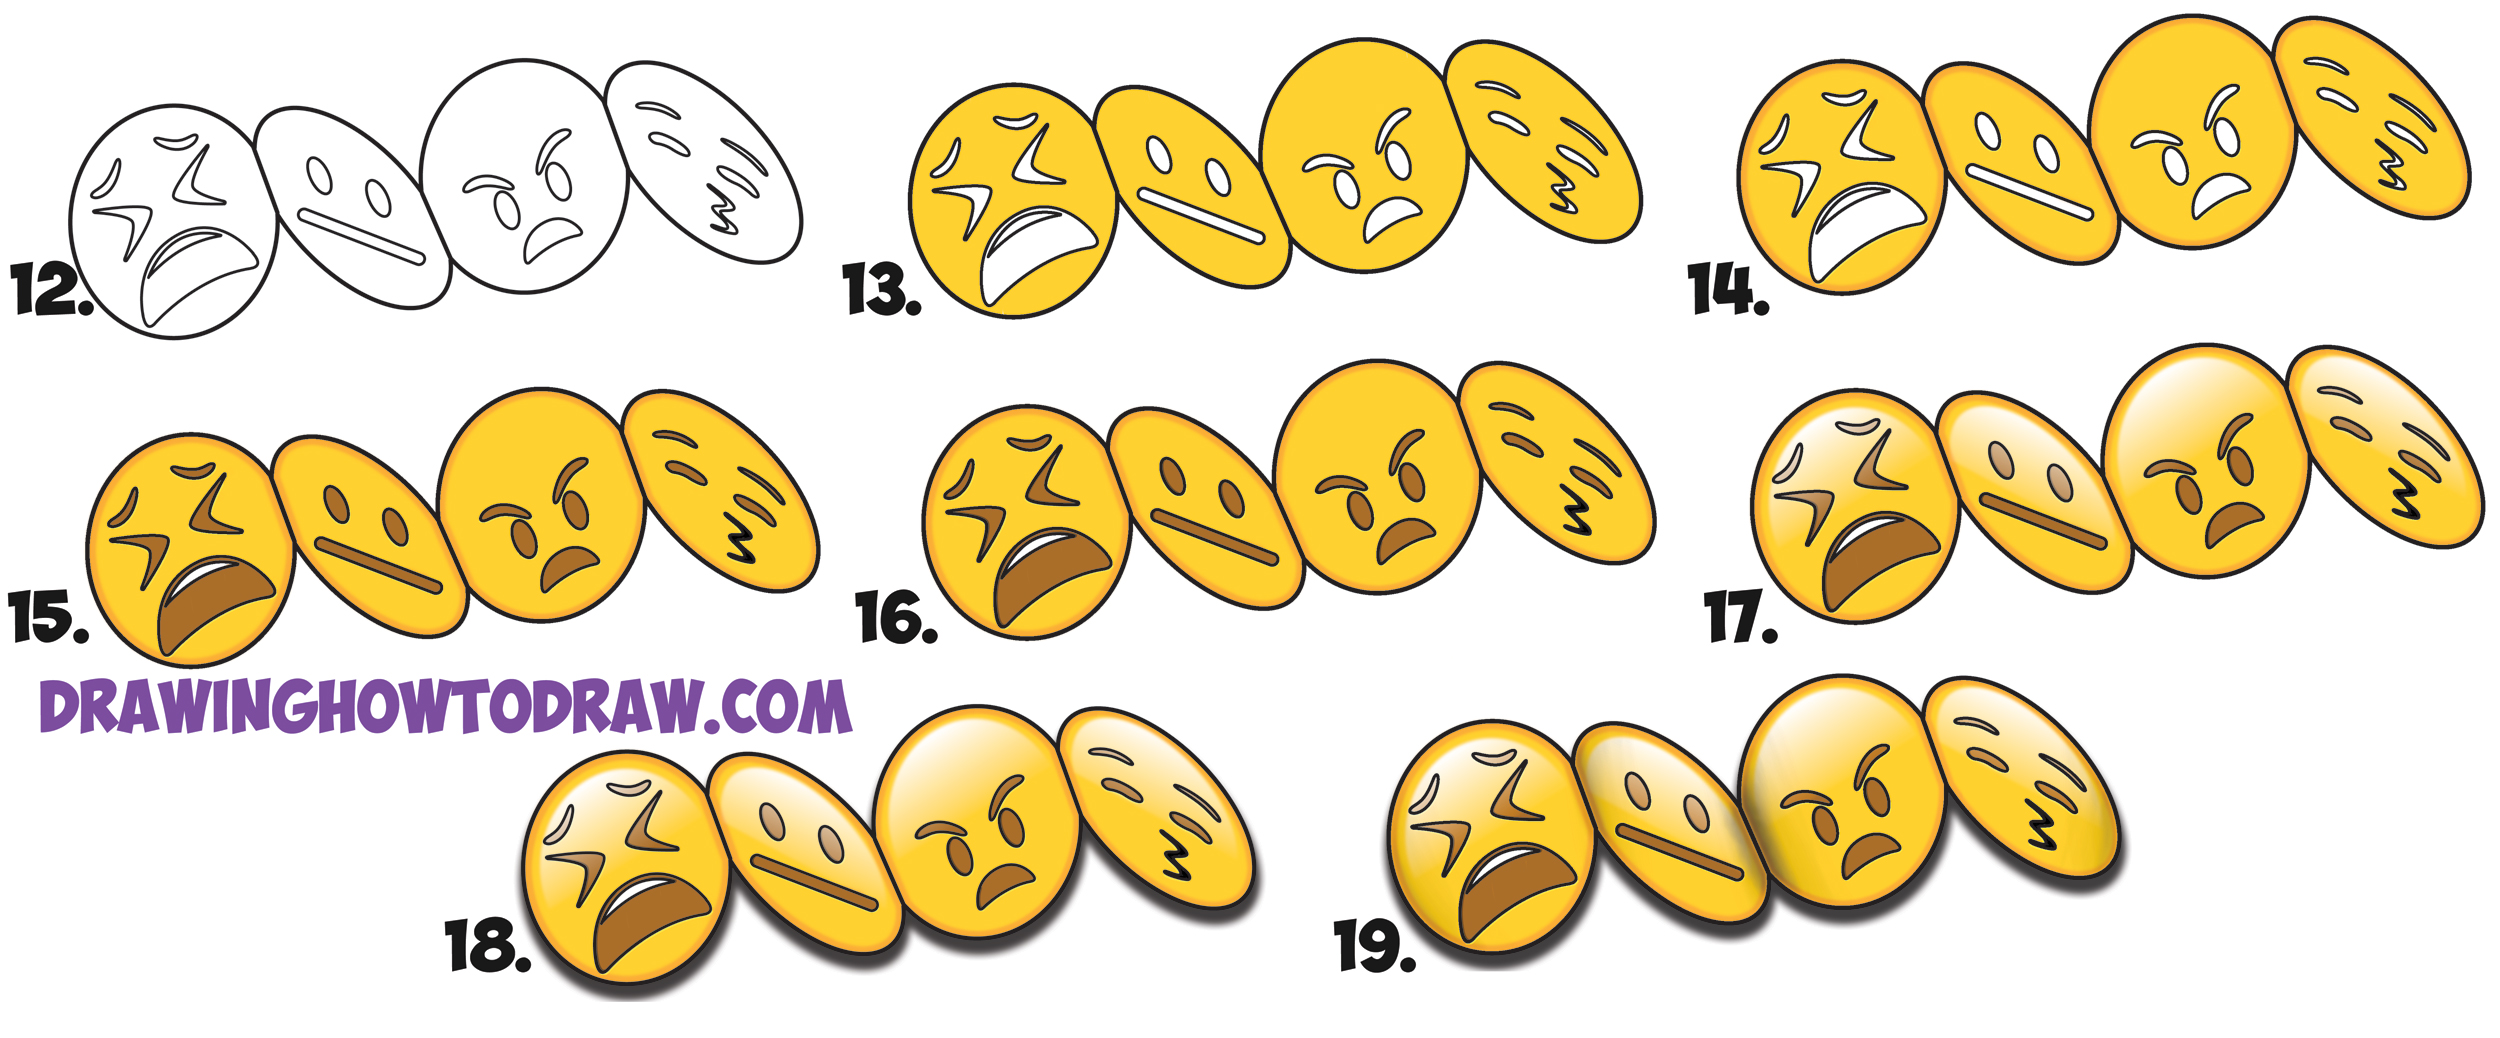 how to draw emojis step by step